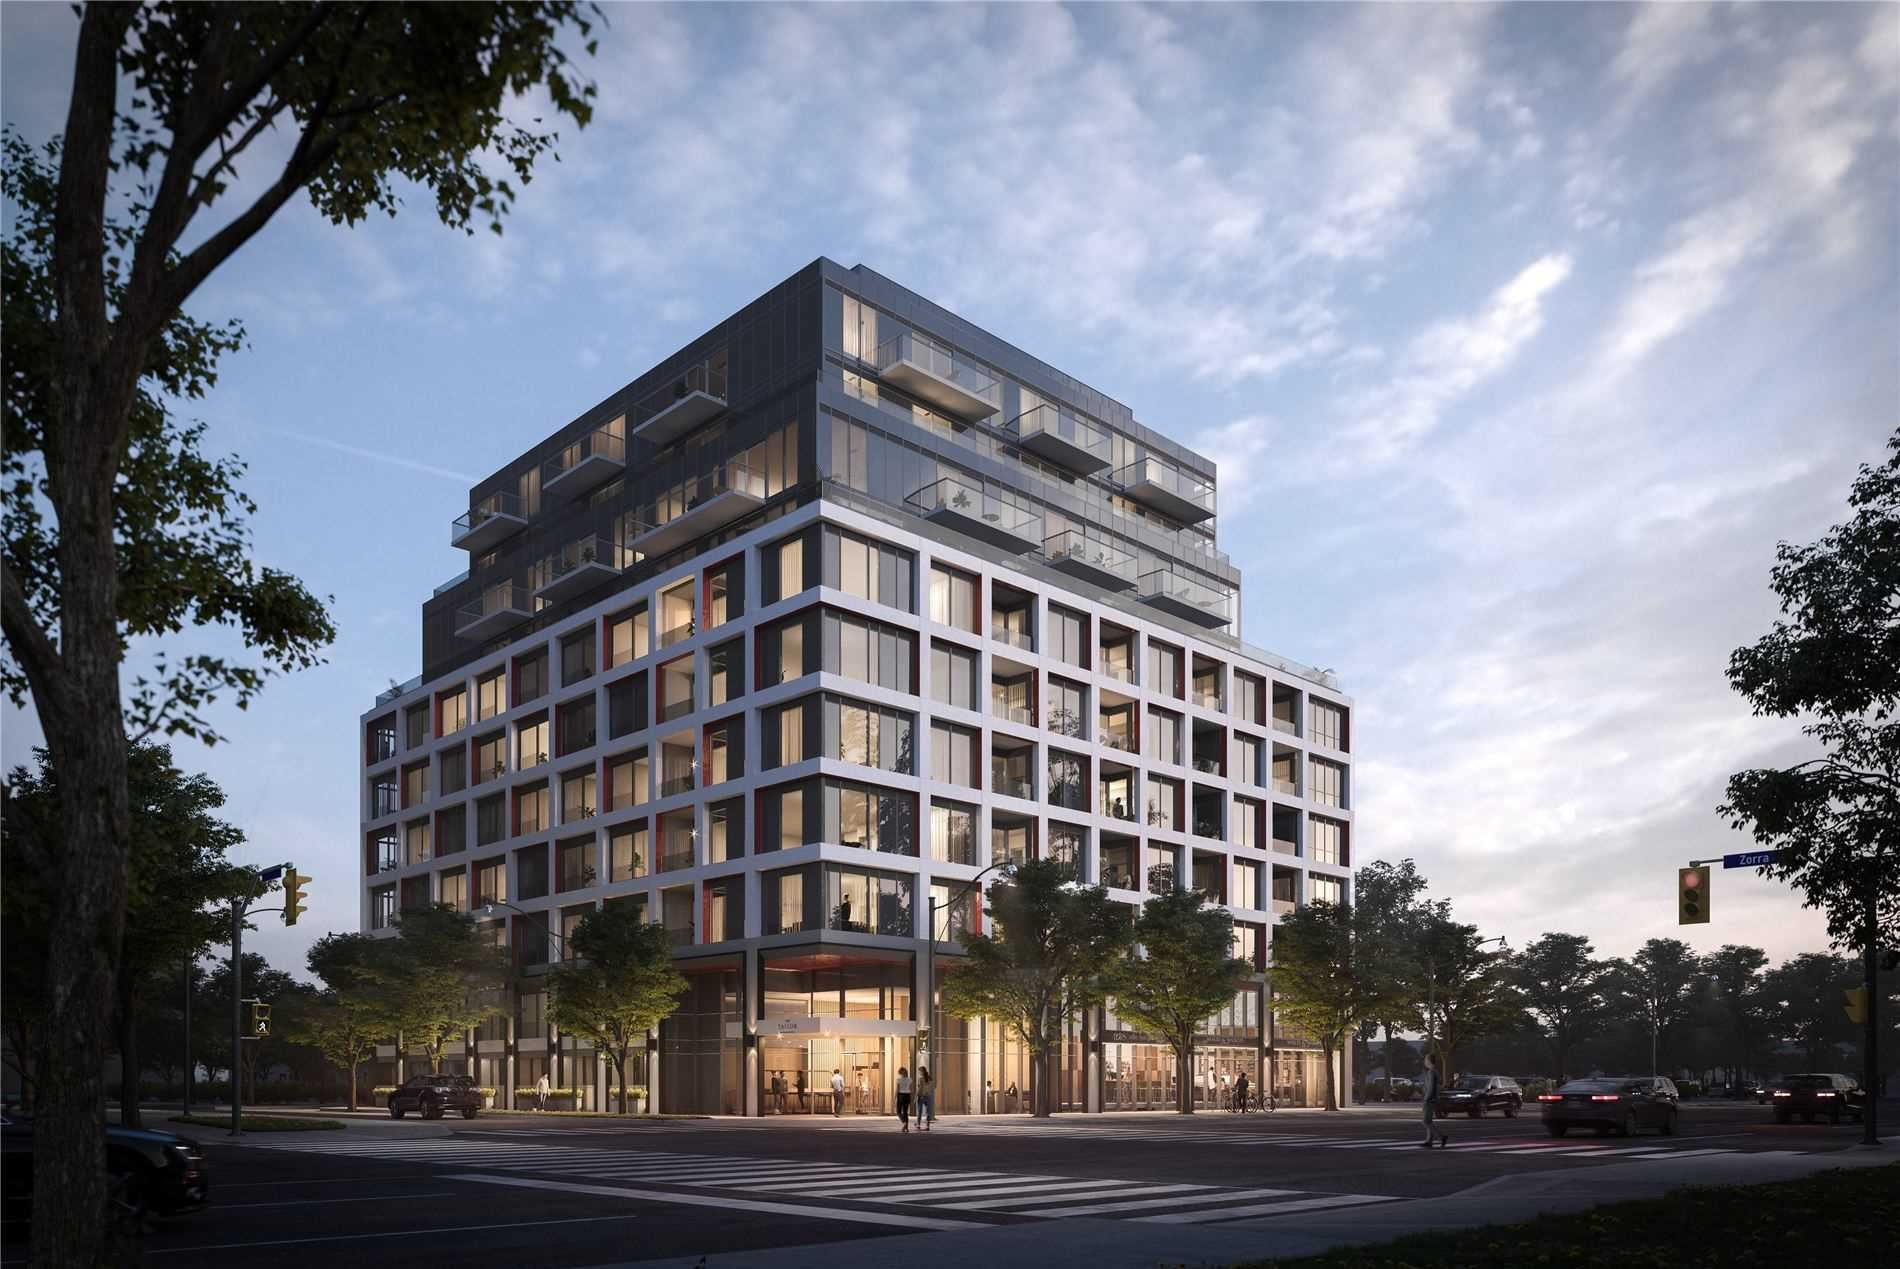 1197 The Queensway St #702, Toronto, ON M8Z1R7 - MLS#: W5237680